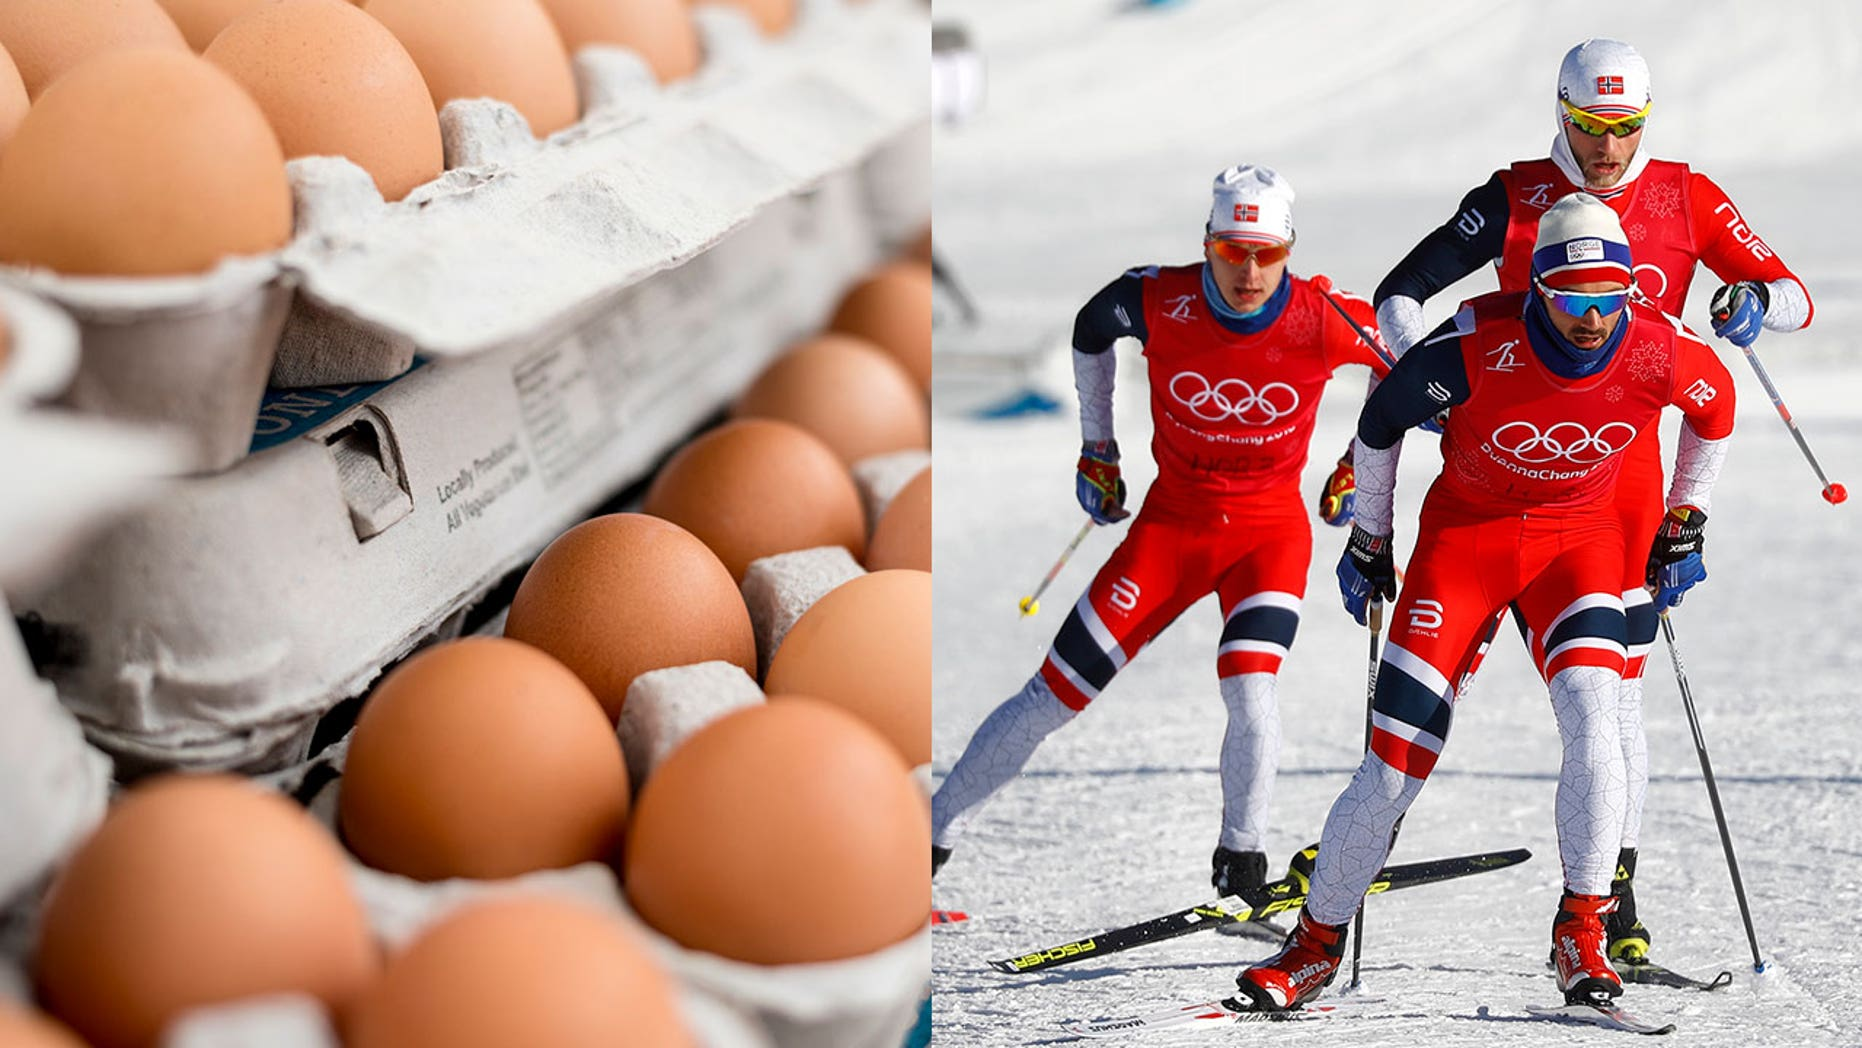 The chefs only needed 1,500 eggs to feed their skiers and skaters, but a problem with Google Translate left them with 10 times as many.